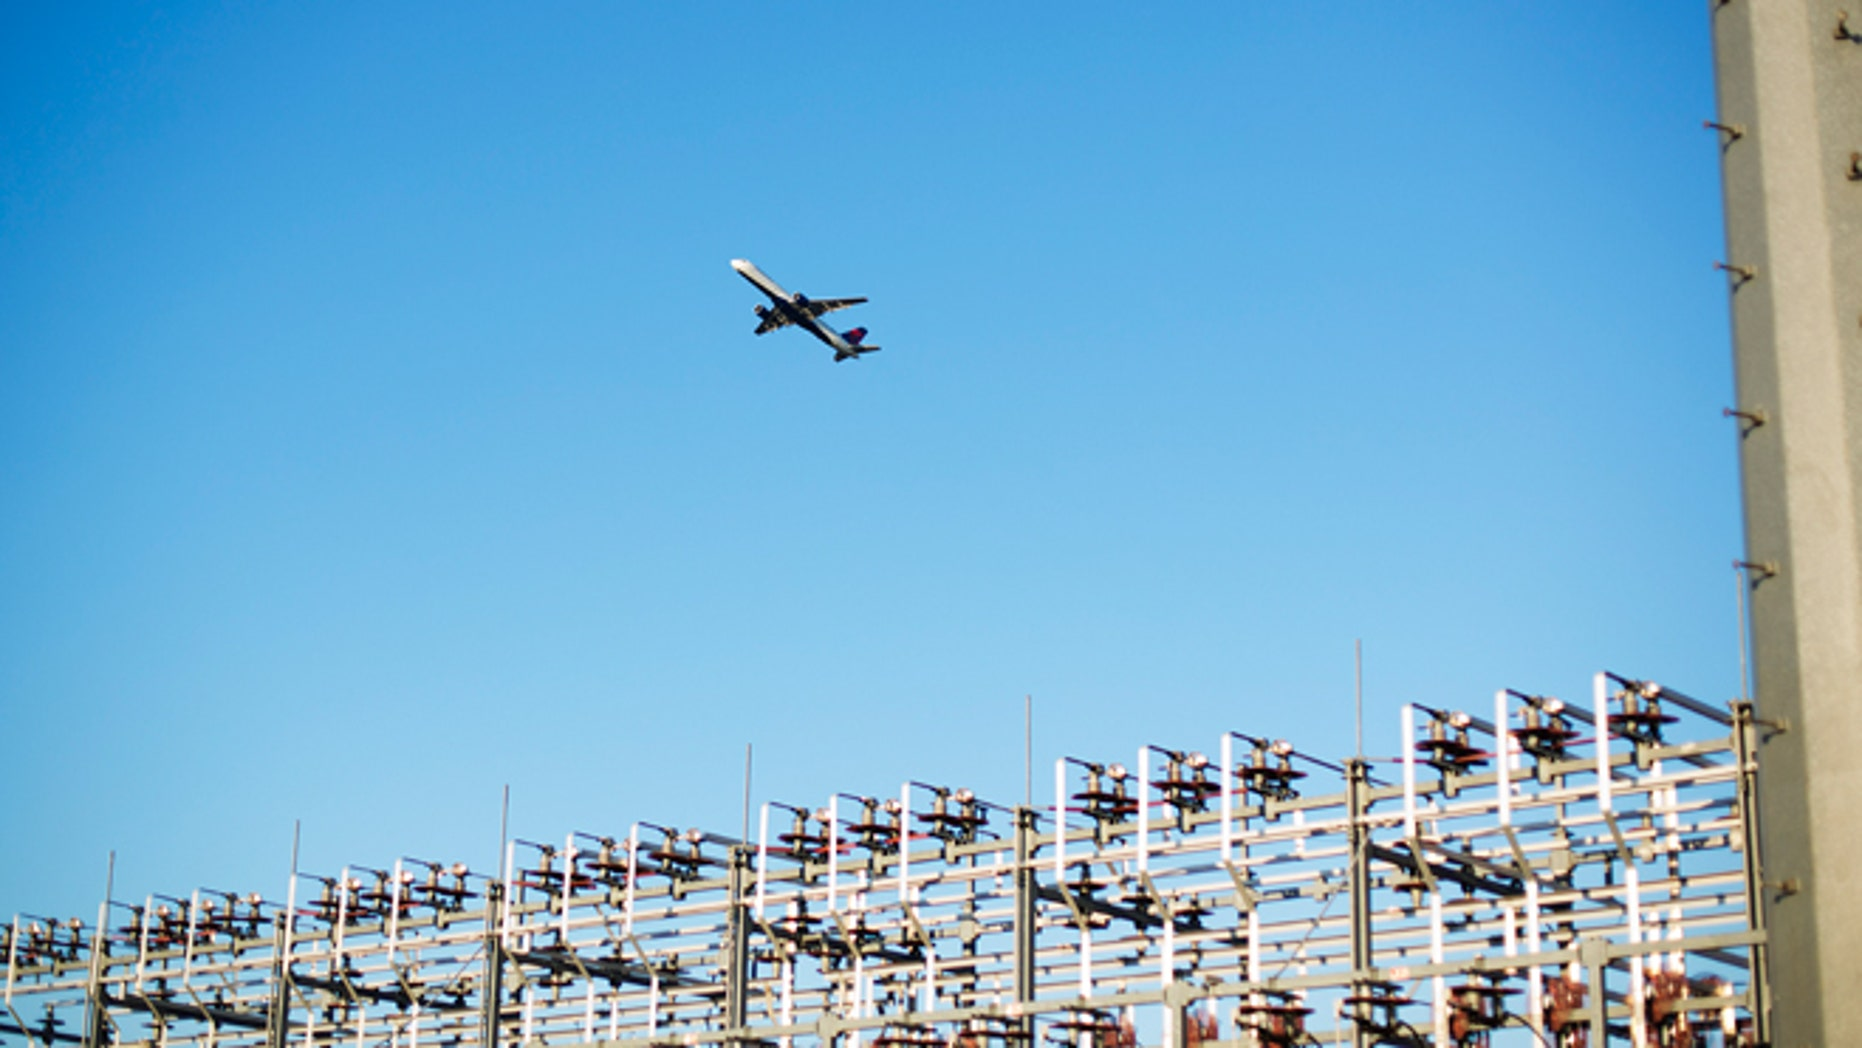 FILE -- Aug. 27, 2014: An airplane takes off from Hartsfield-Jackson International Airport in Atlanta.